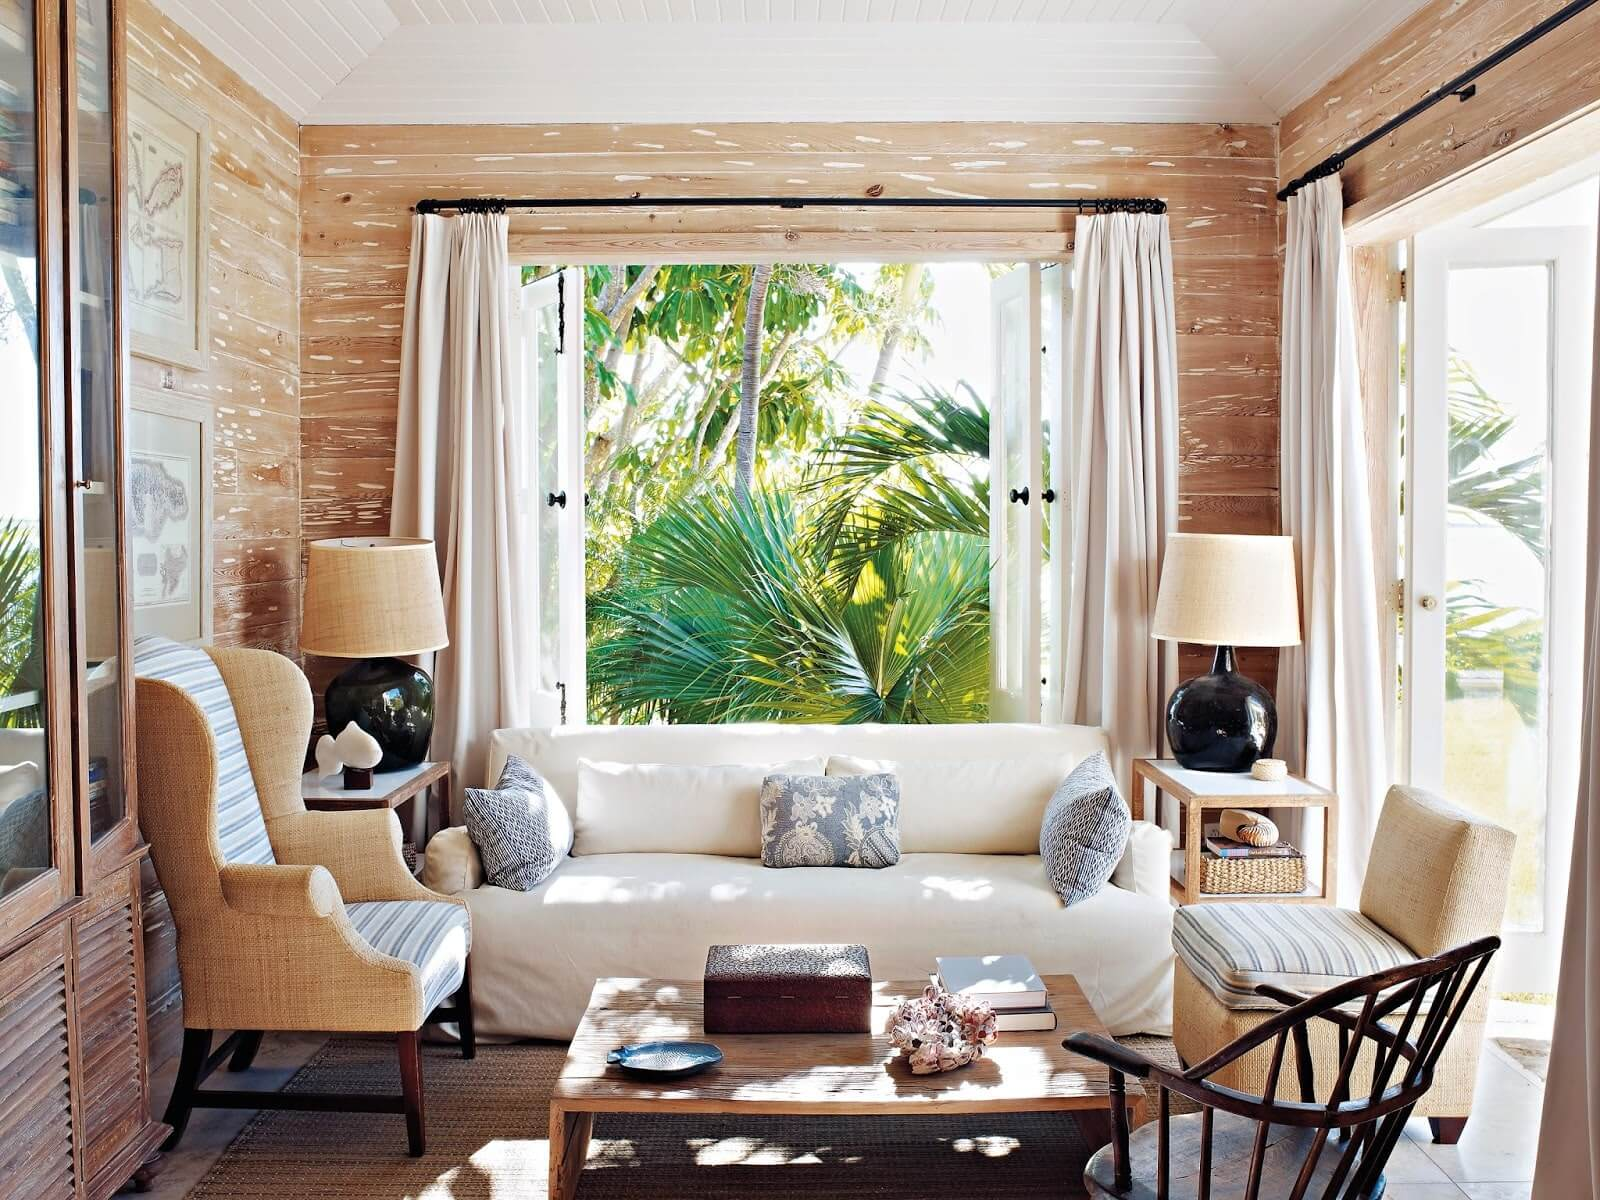 Best 38 Best Tropical Style Decorating Ideas And Designs For 2019 This Month